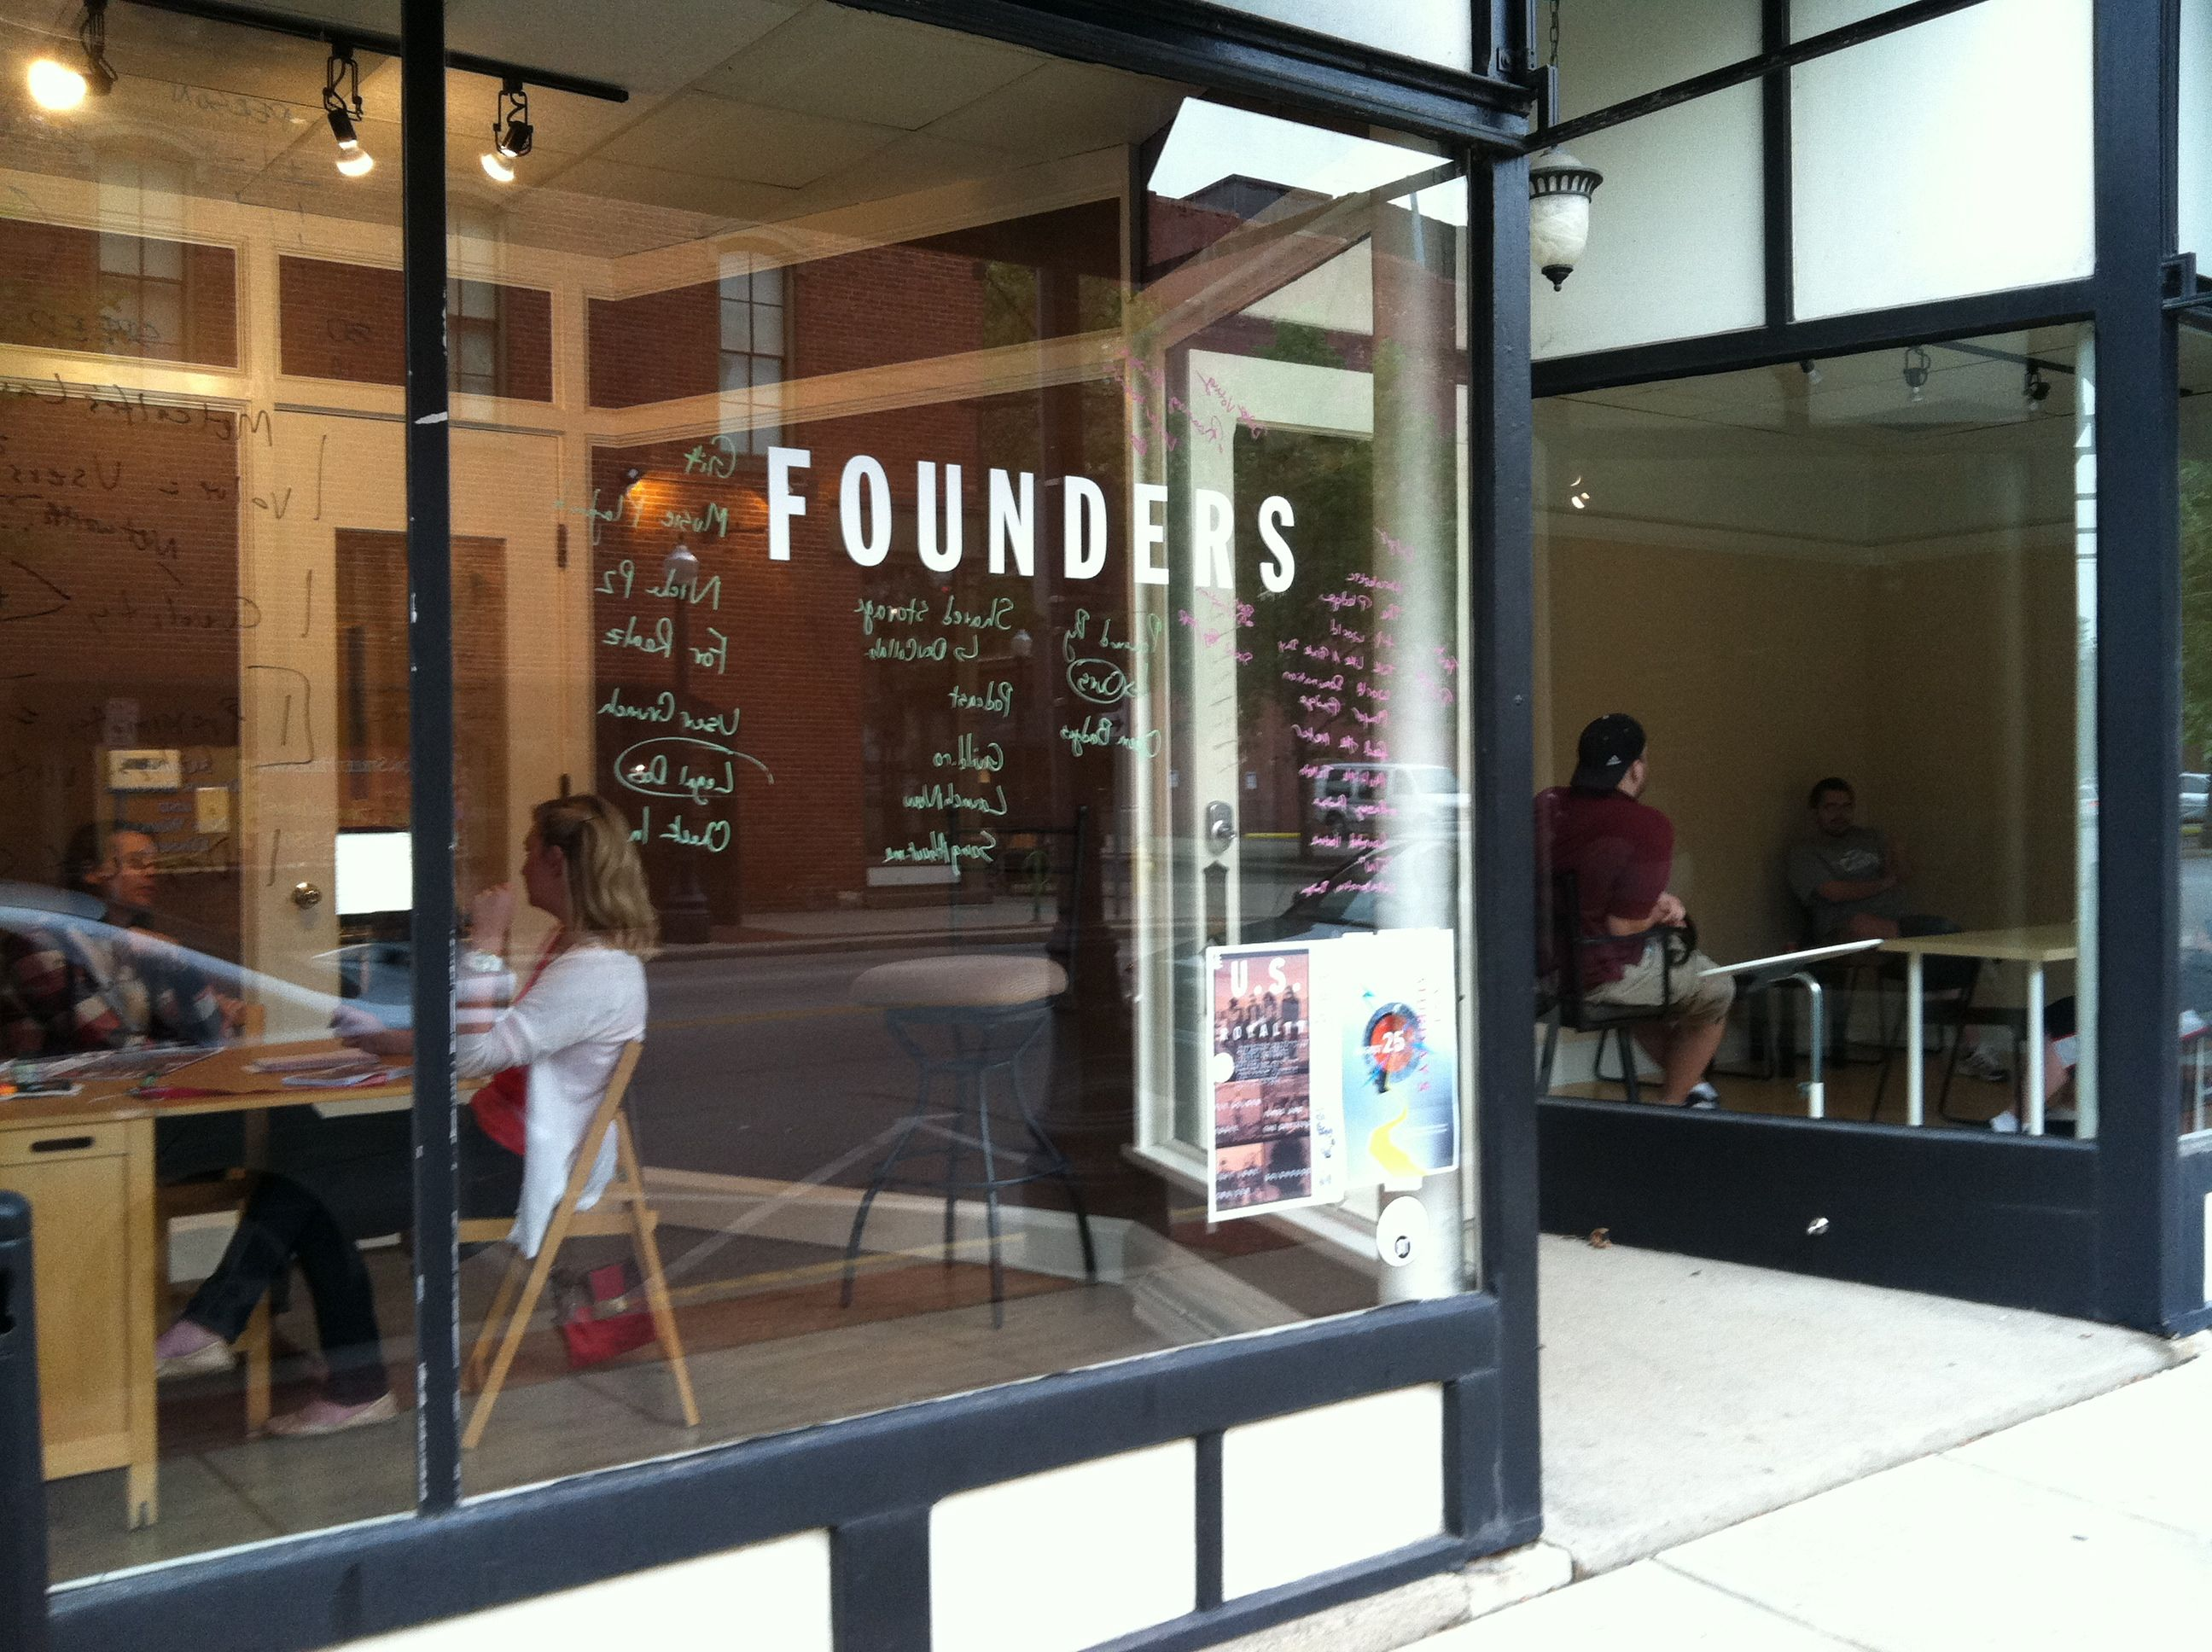 Stop by Founders to meet a local community of entrepreneurs.